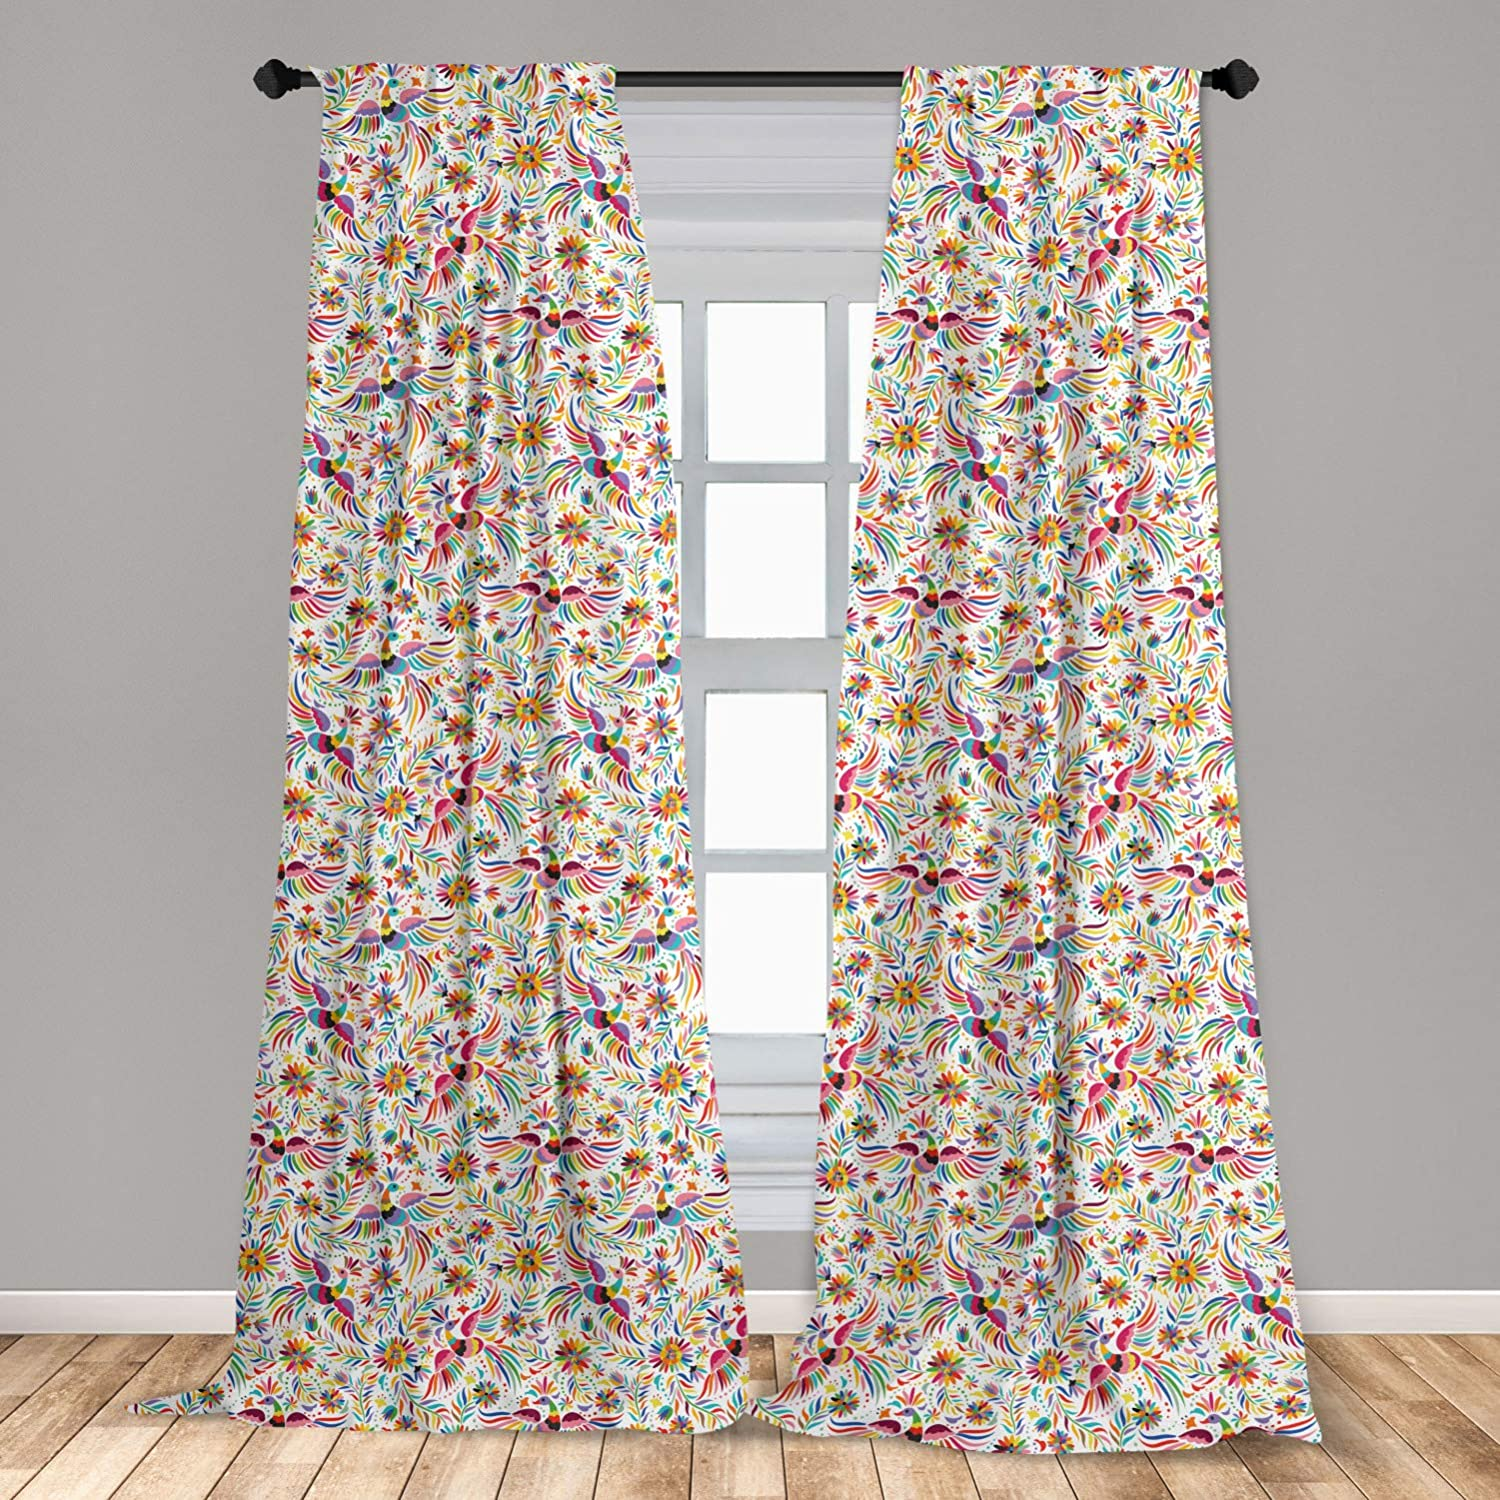 Ambesonne Mexican Curtains, Colorful Nature Inspired Pattern Birds Flowers Leaves and Dots Creativity, Window Treatments 2 Panel Set for Living Room Bedroom Decor, 56